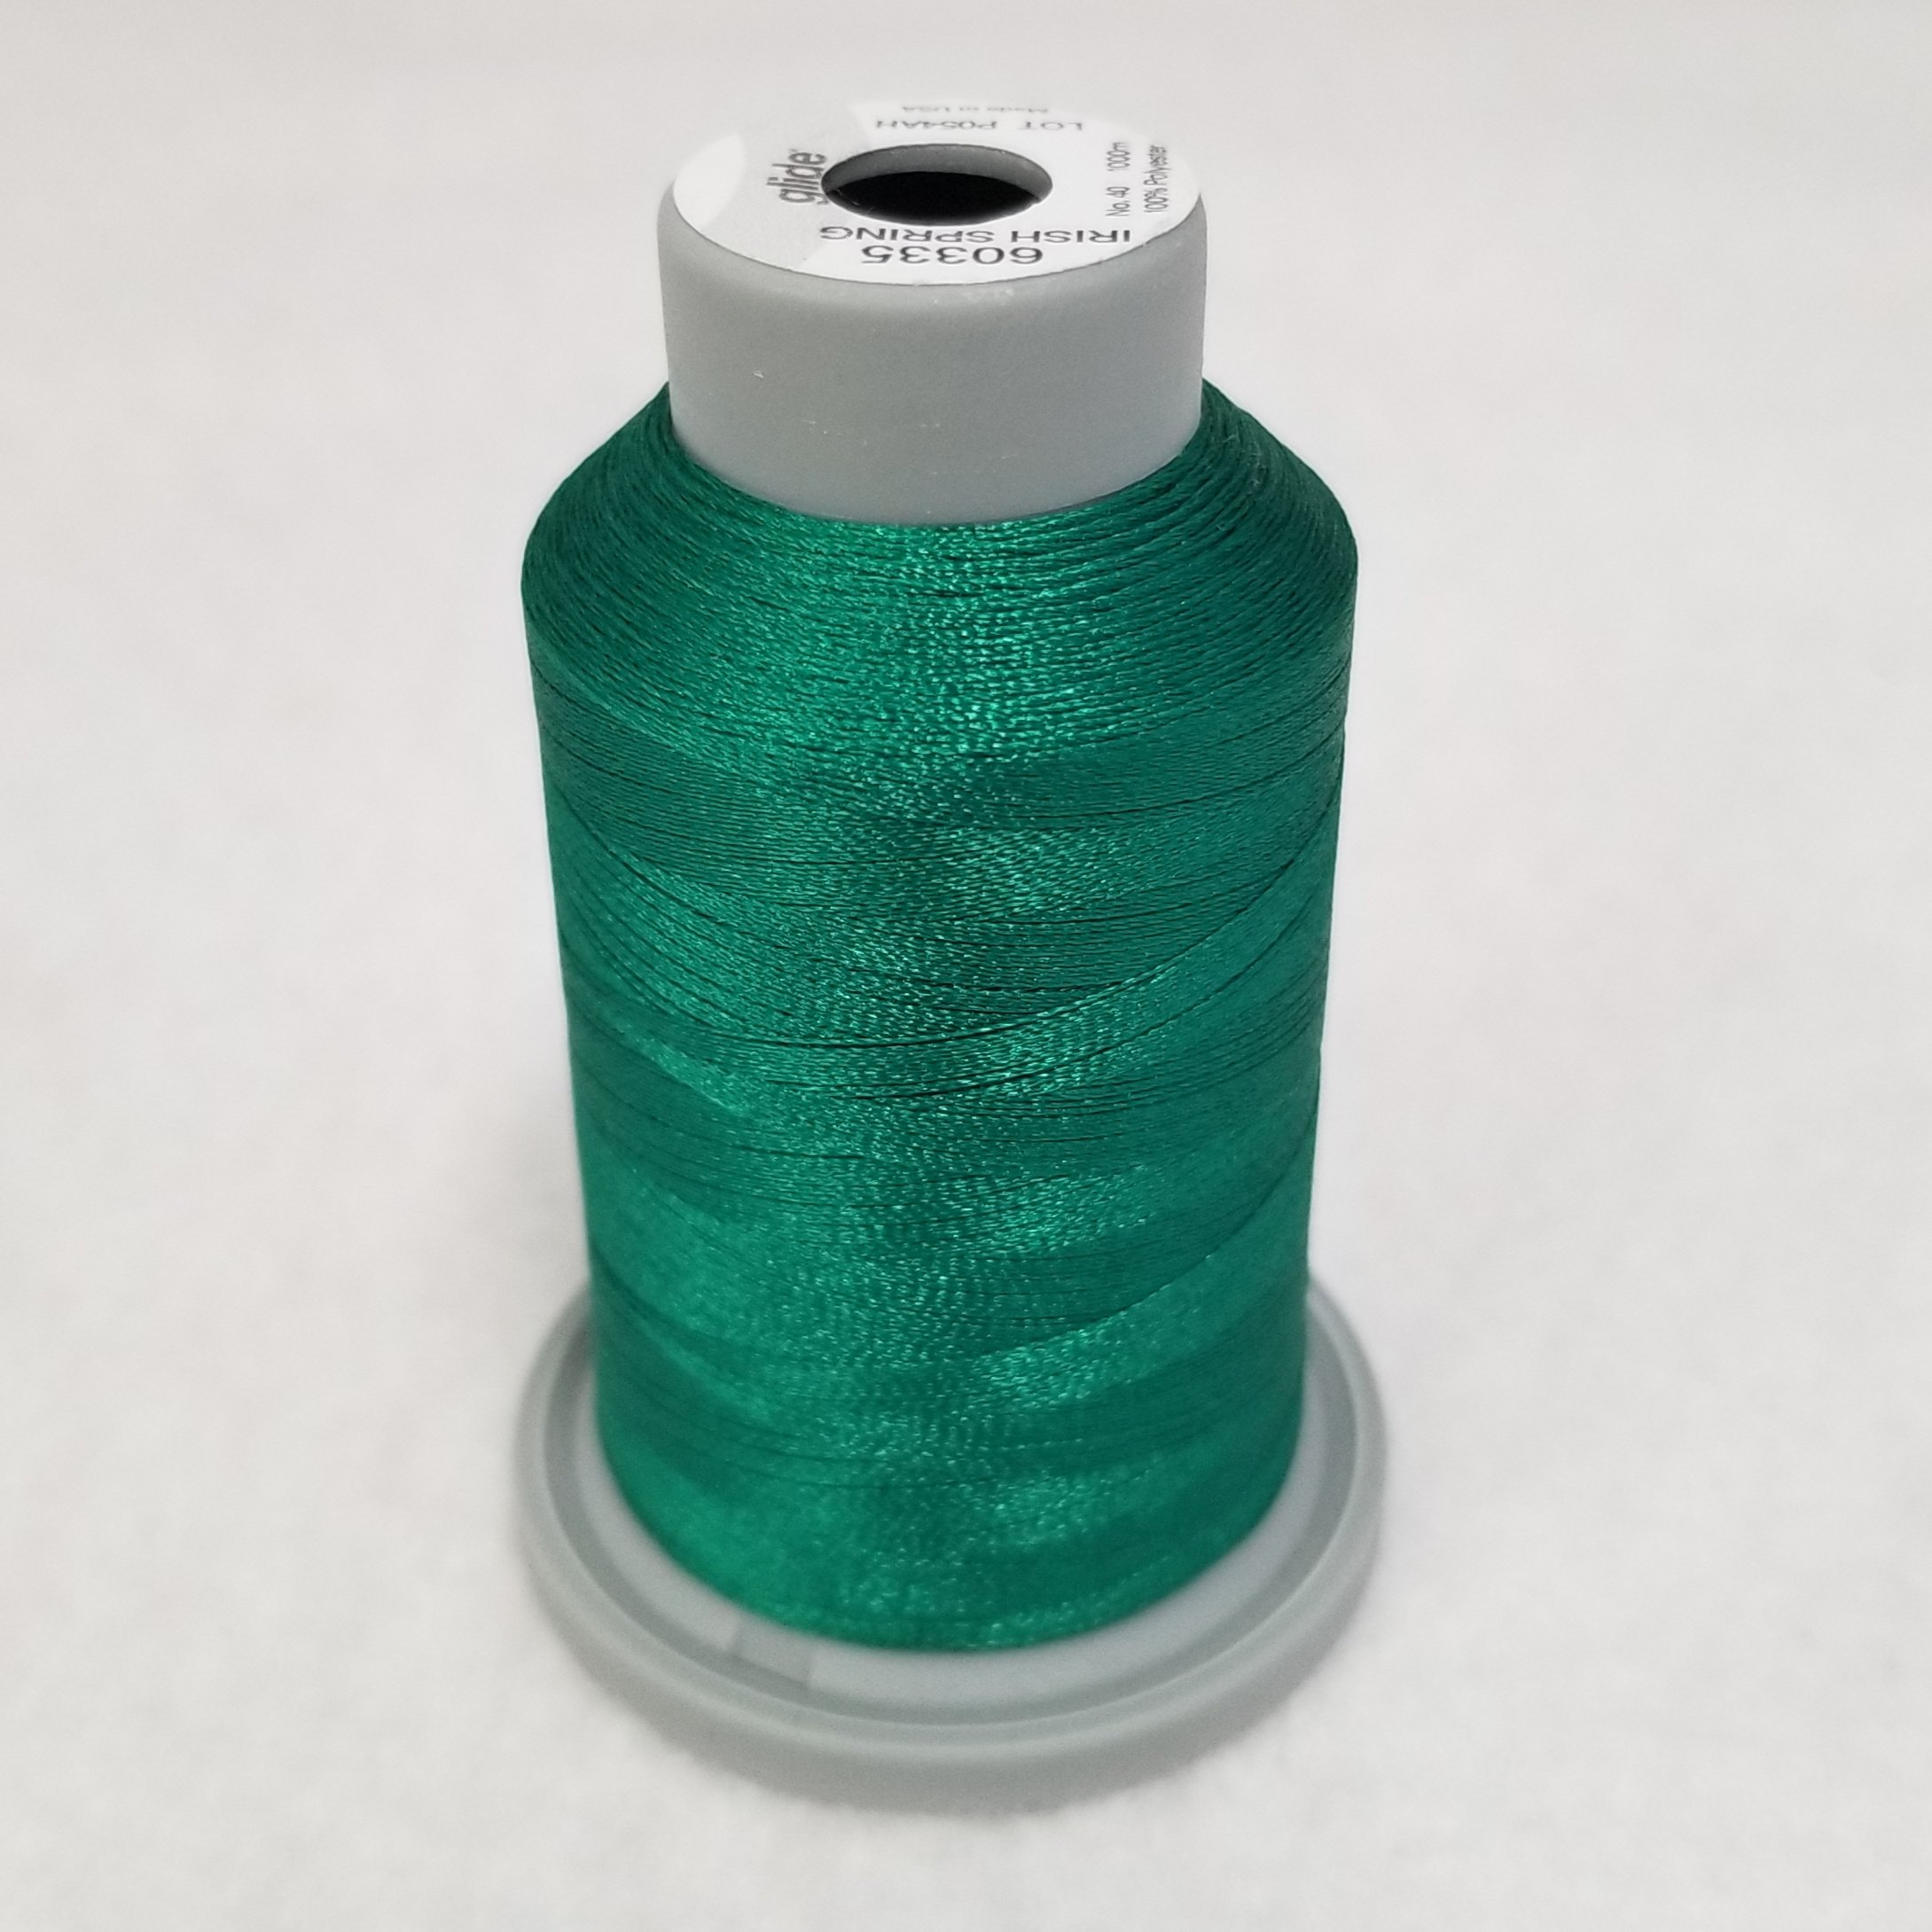 Irish Spring Green Glide Thread Spool